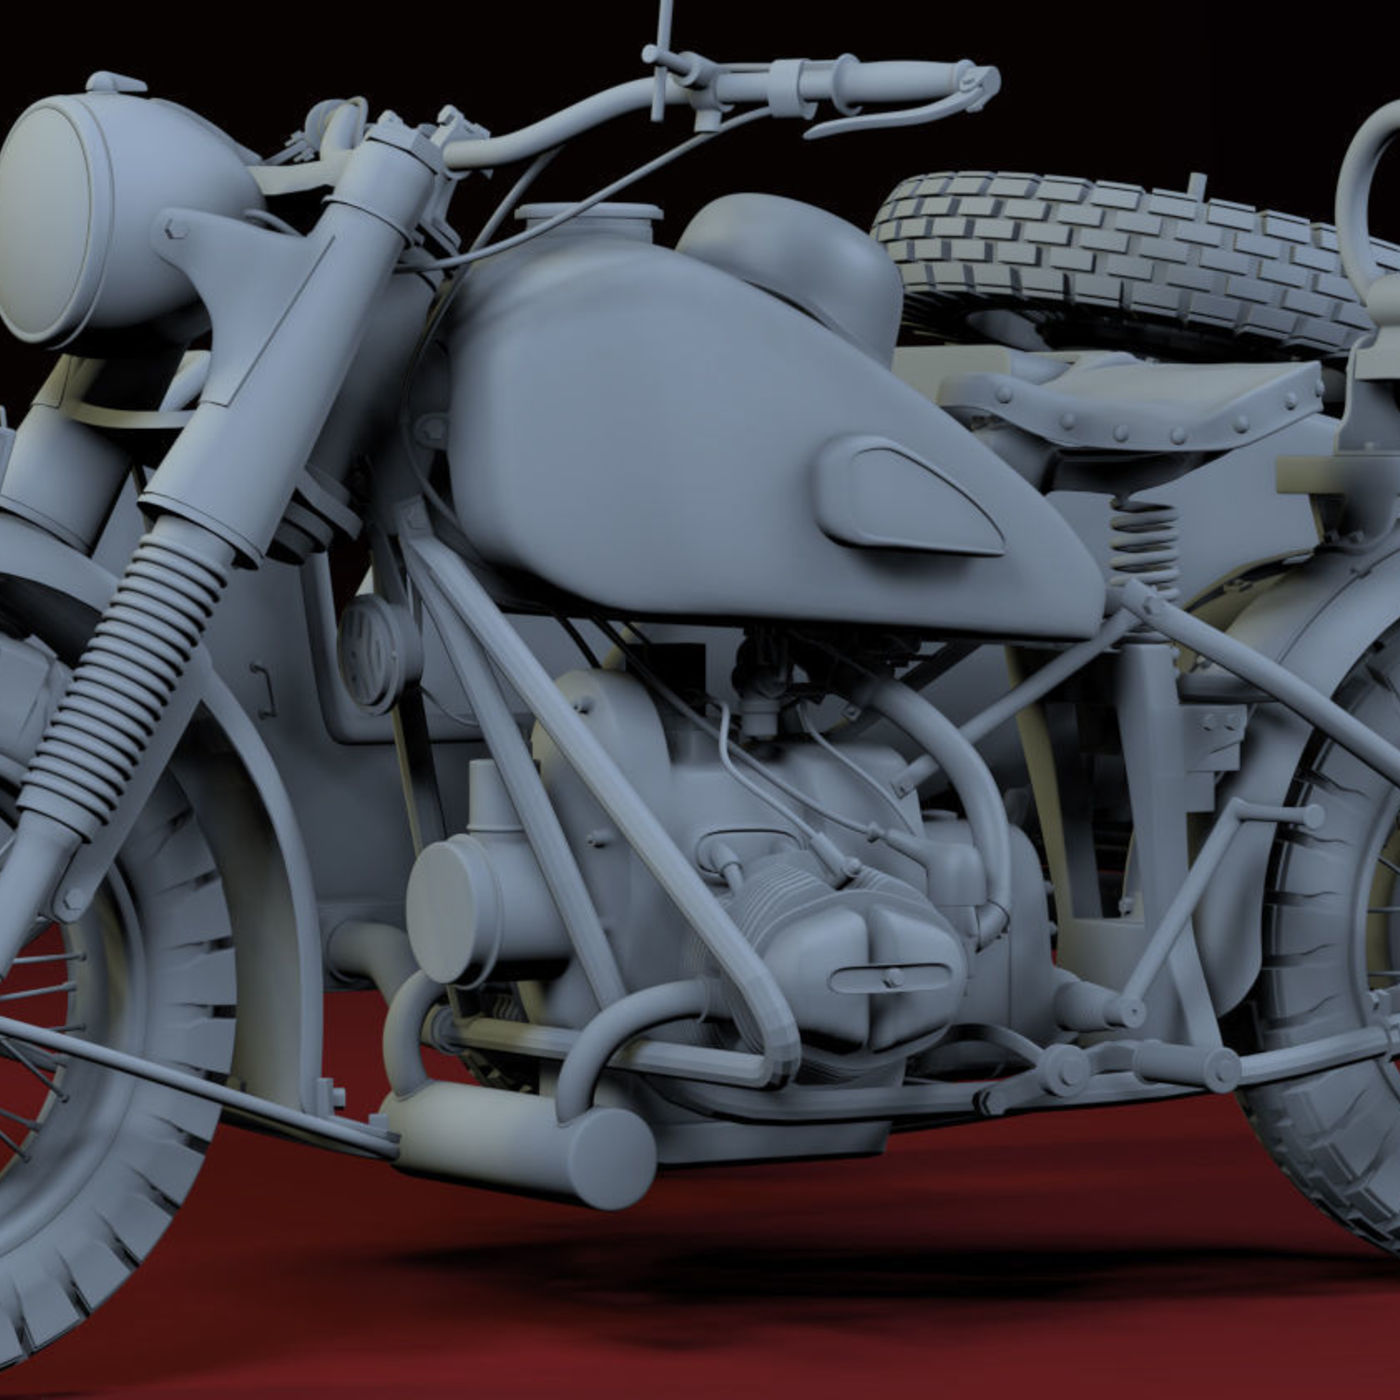 ww2 R75 Motorcycle HighPoly Model with mg42 3D model